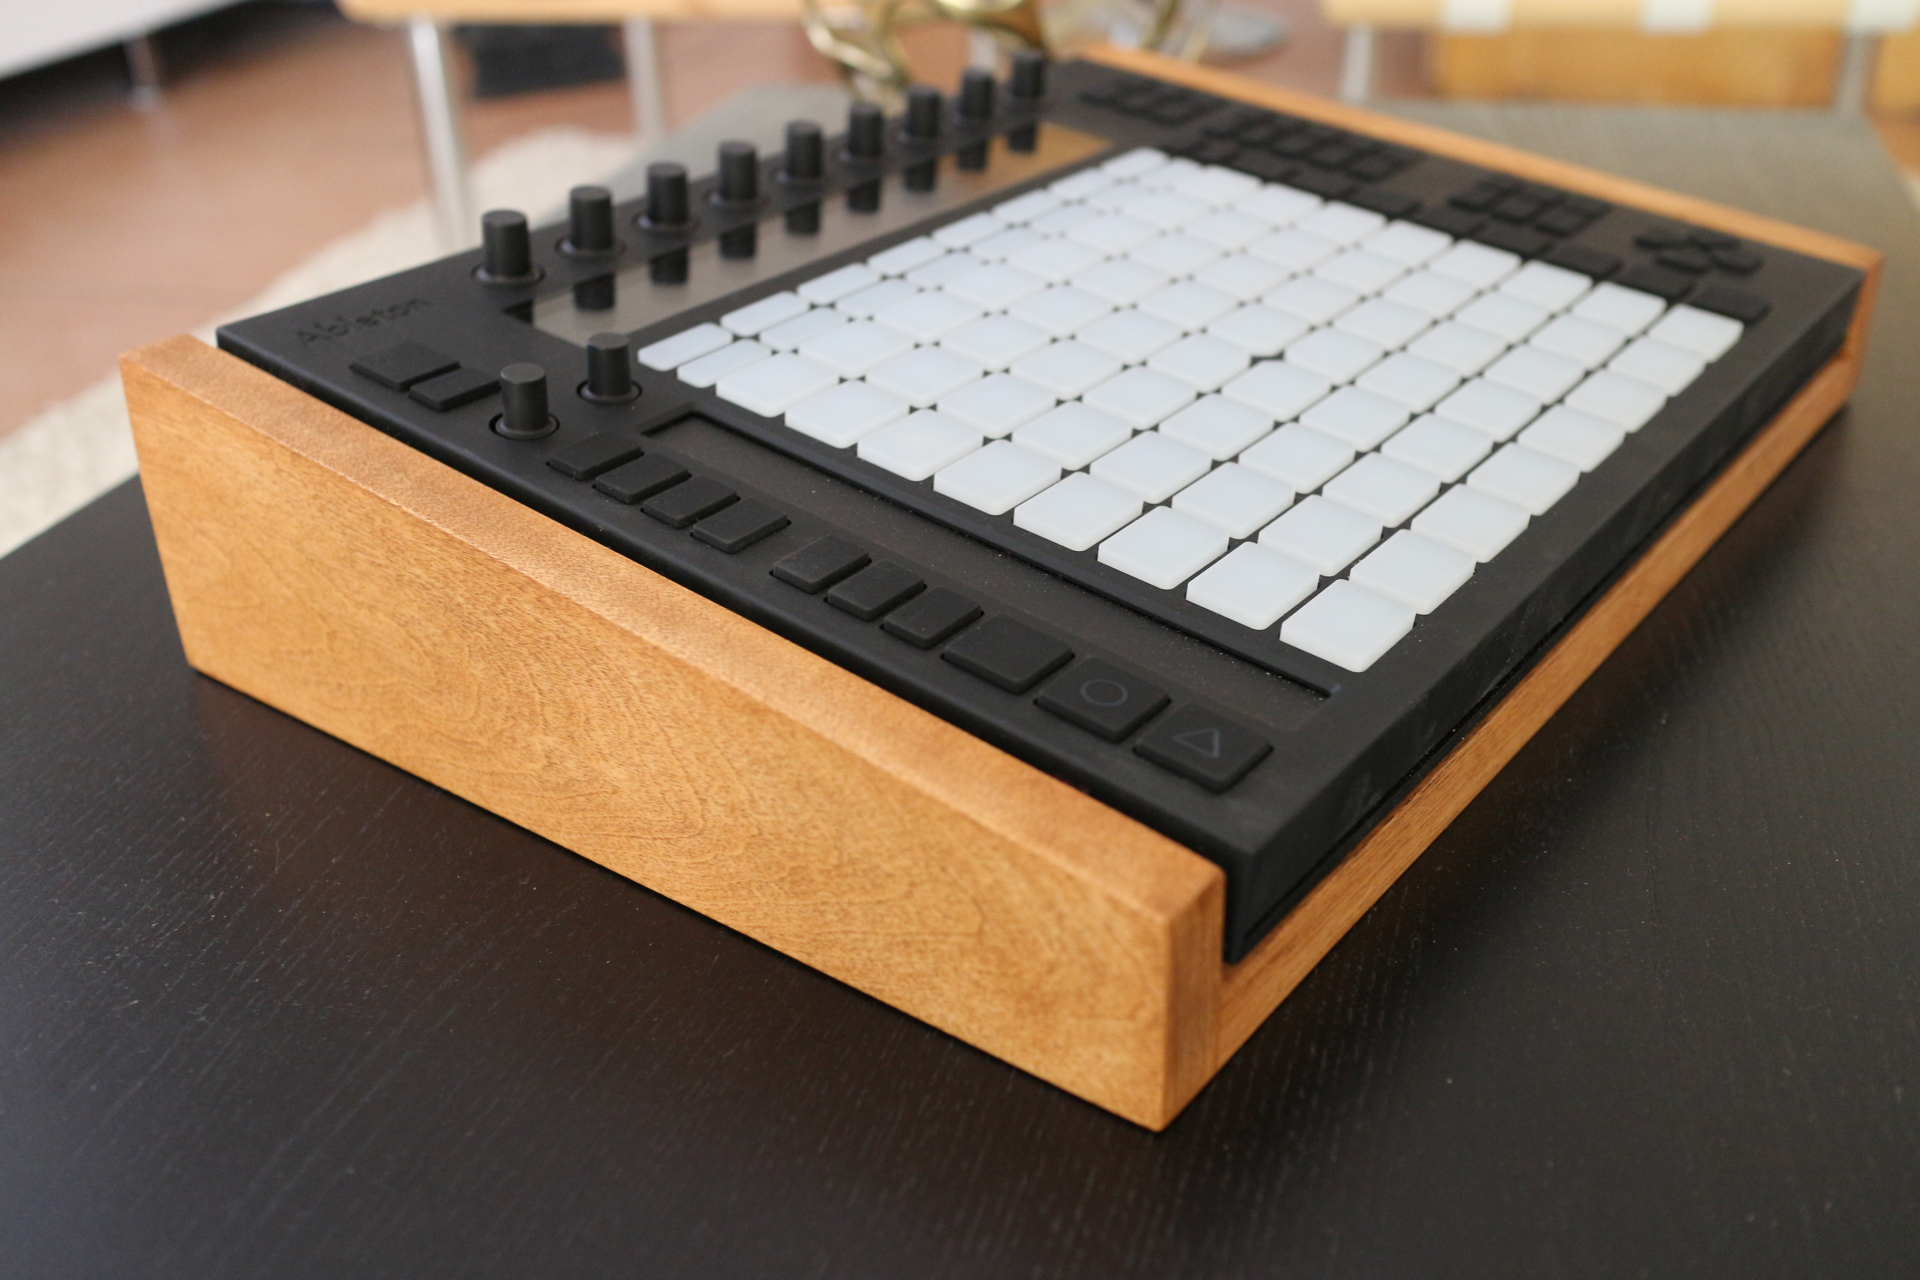 Ableton Push Case